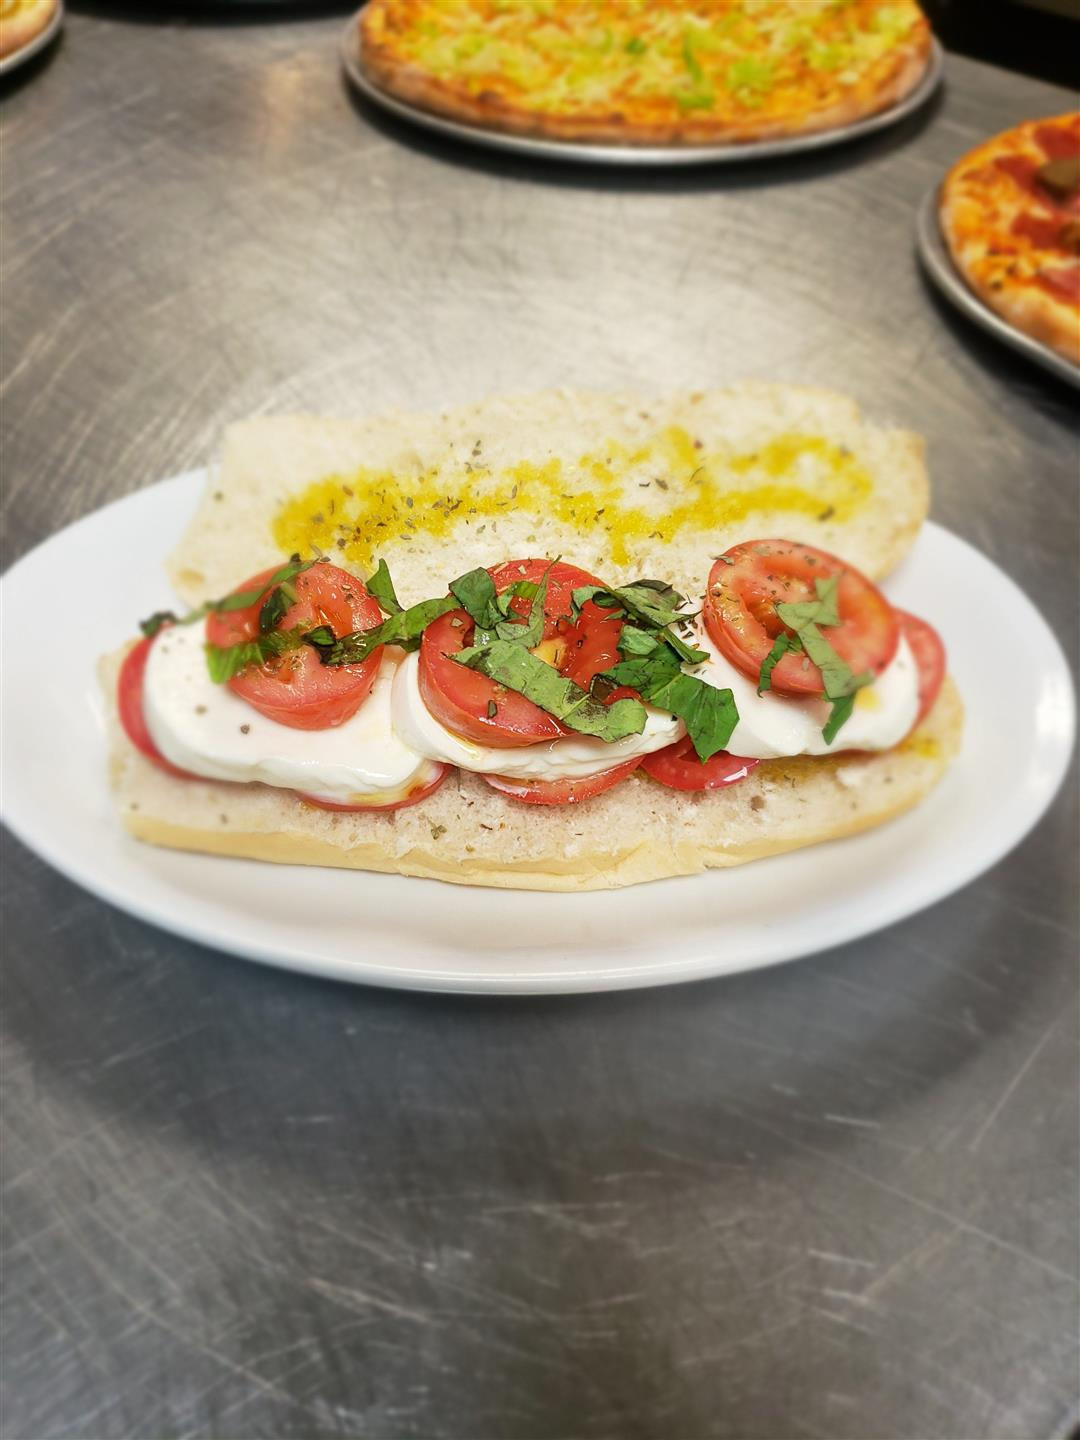 Extra virgin olive oil, whole-peeled tomatoes, fresh mozzarella, basil and oregano on a roll